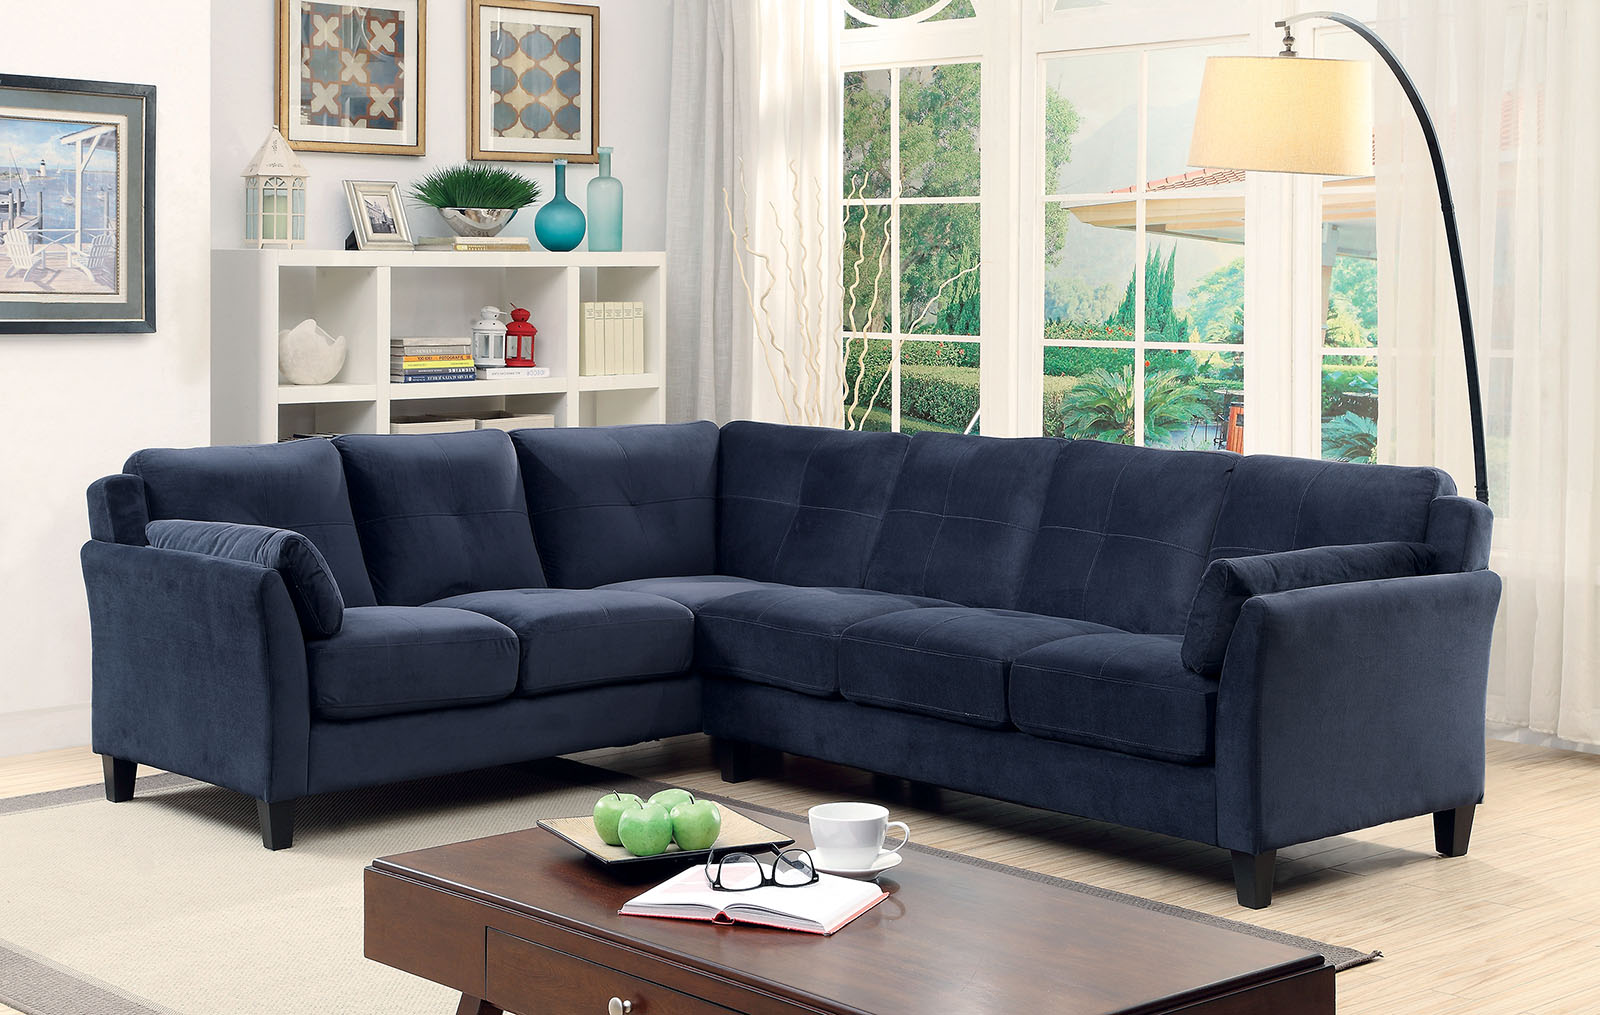 couch extra lamps living set theaters chairs most cushions furni schemes leather portland grey ja as well ideas and sectional navy color or with blue chaise room red storage